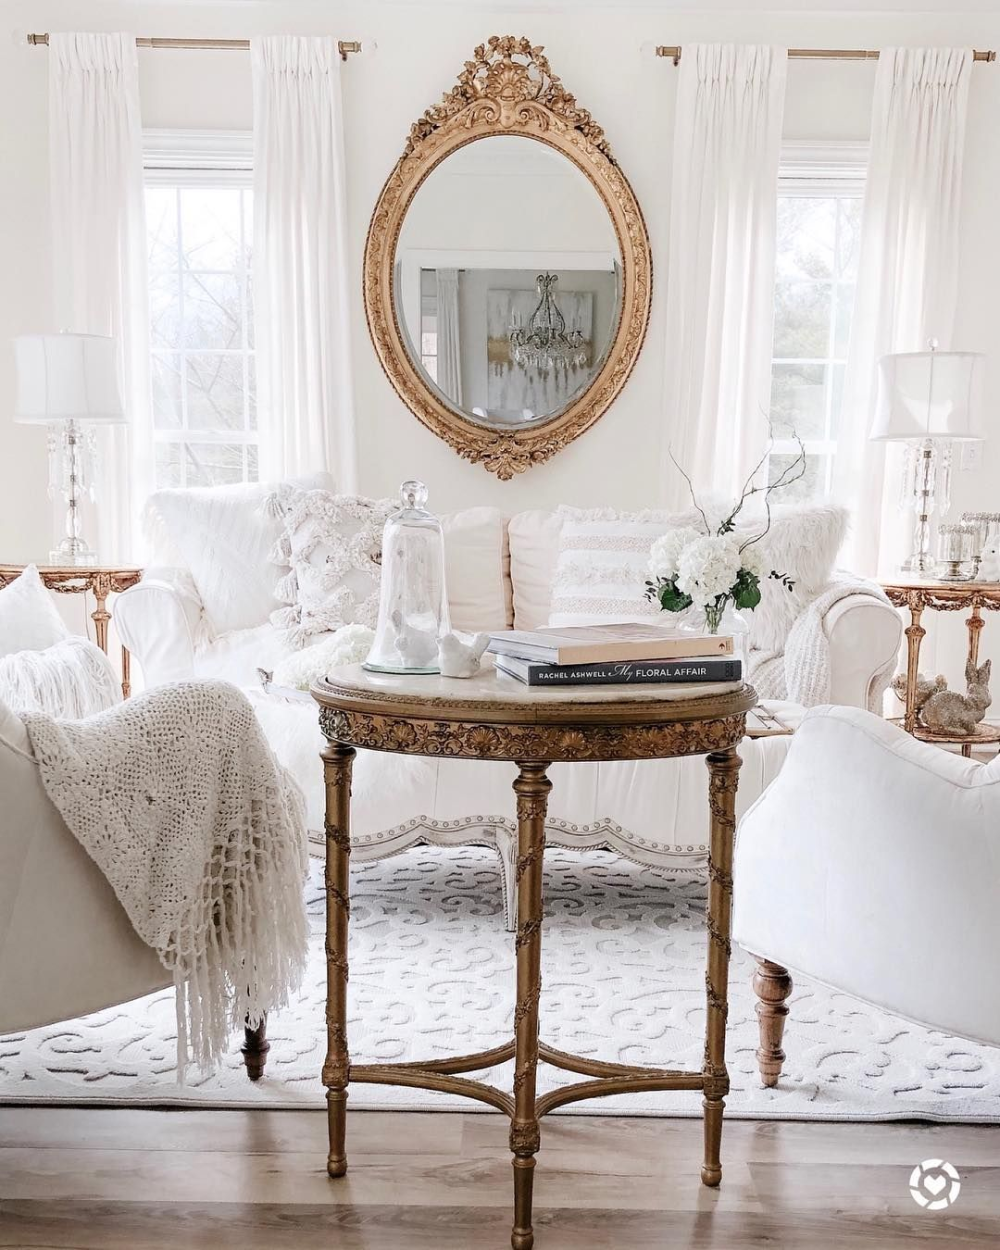 24 Gorgeous French Country Sofas For Your Living Room In 2020 Modern French Decor French Country Sofa Country Sofas